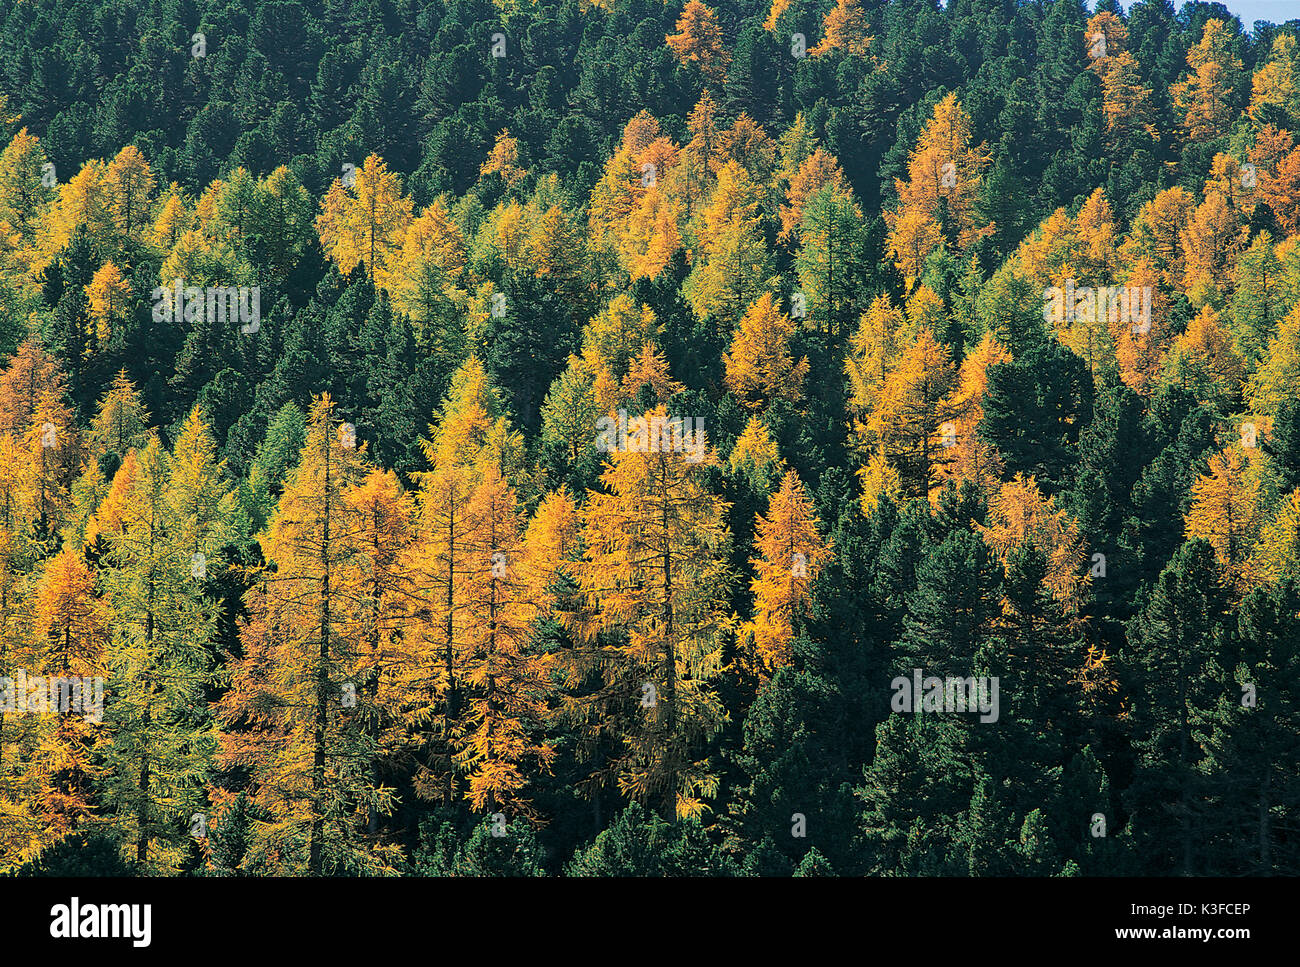 Autumnal coniferous forest - Stock Image